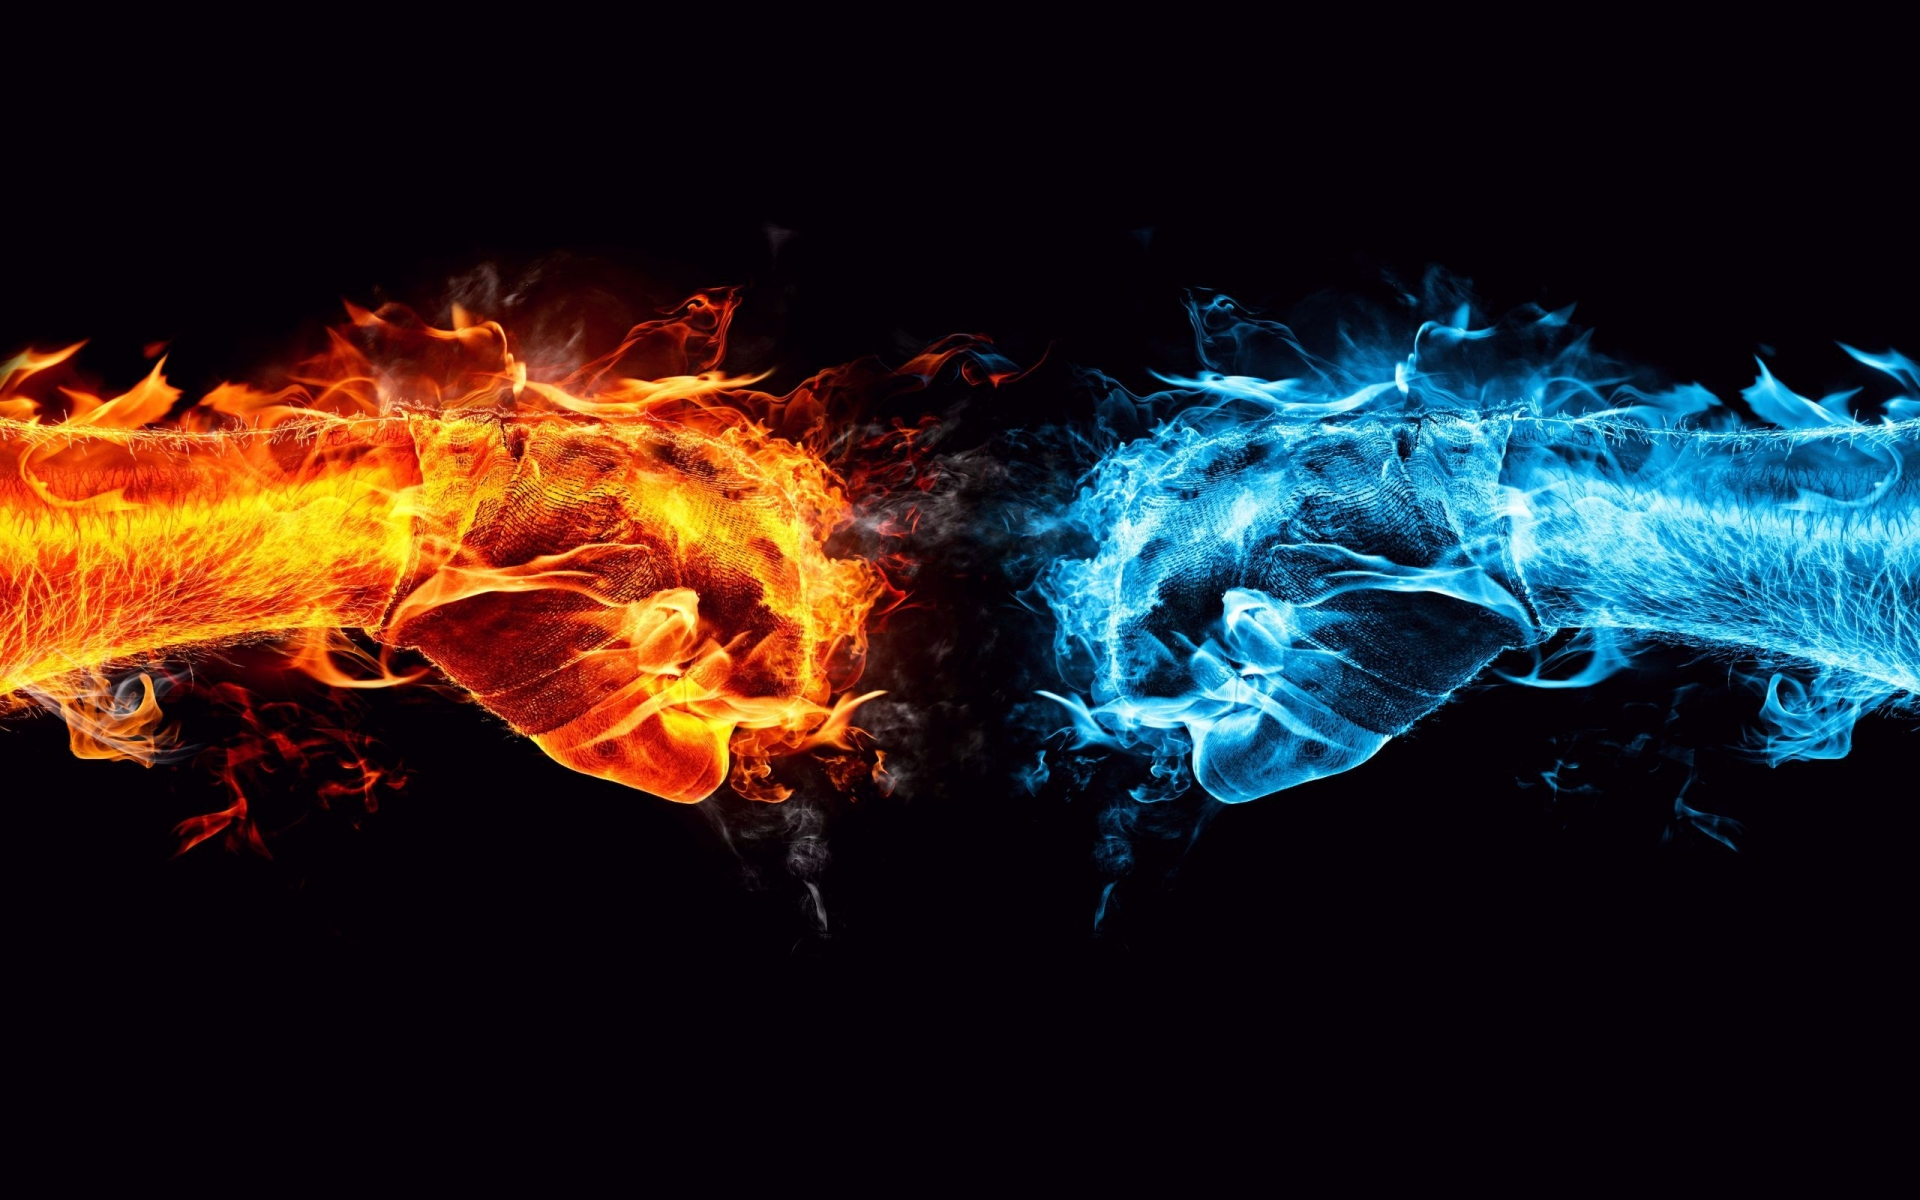 Fire and Ice Conflict for 1920 x 1200 widescreen resolution